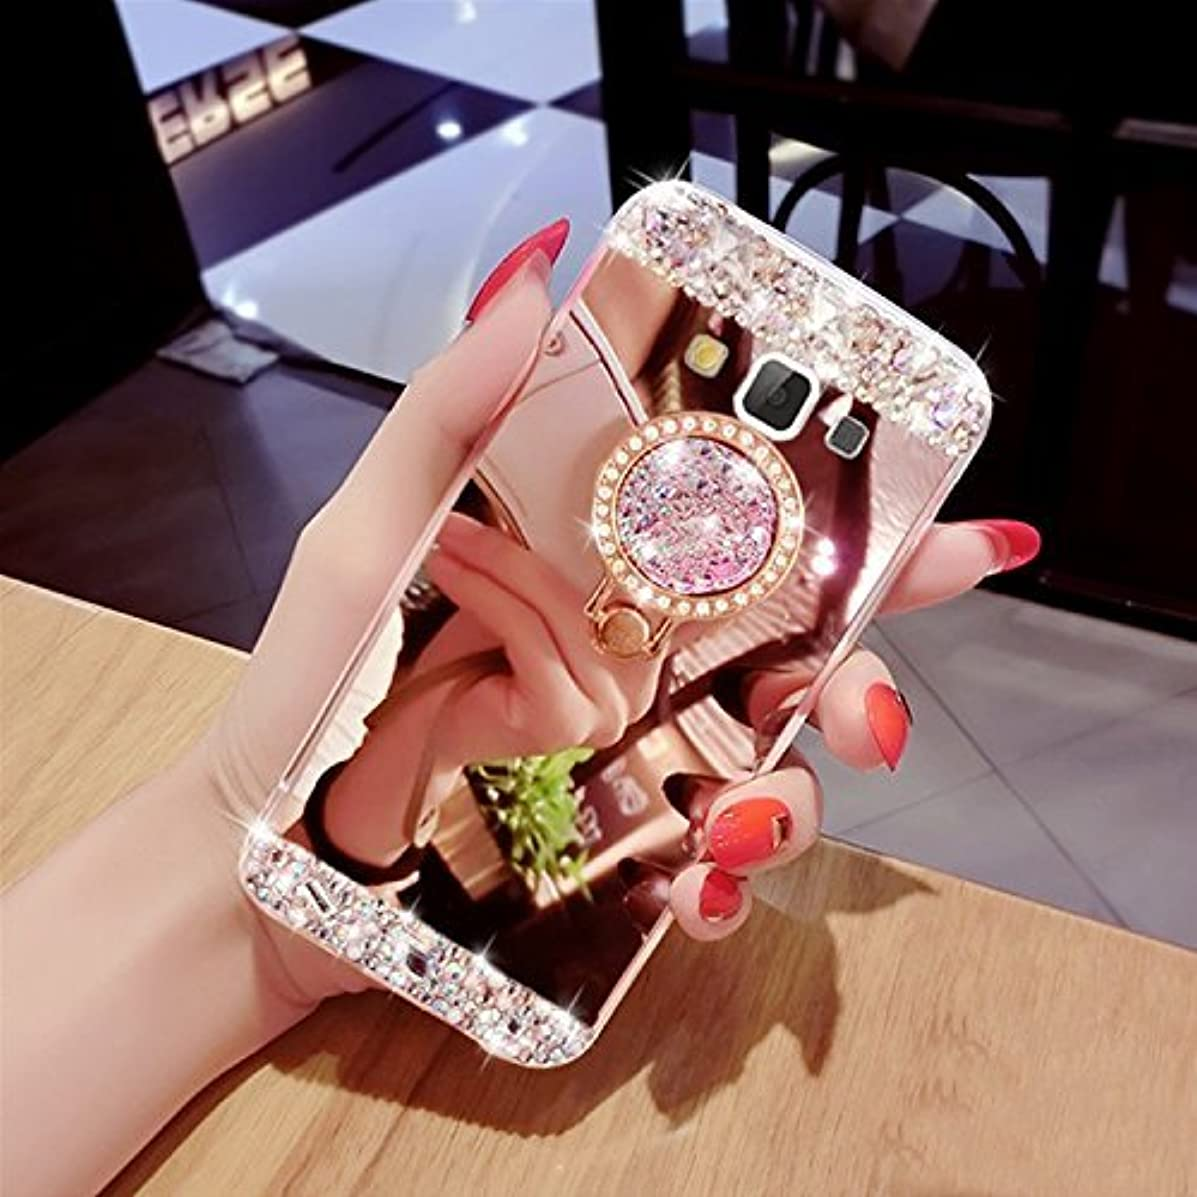 Galaxy J3 Case, Samsung Galaxy Amp Prime Case/Express Prime Case,XIHUA Luxury Crystal Rhinestone Soft Rubber Bumper Bling Diamond Glitter Mirror Makeup Case for Samsung Galaxy J3 - Rose Gold